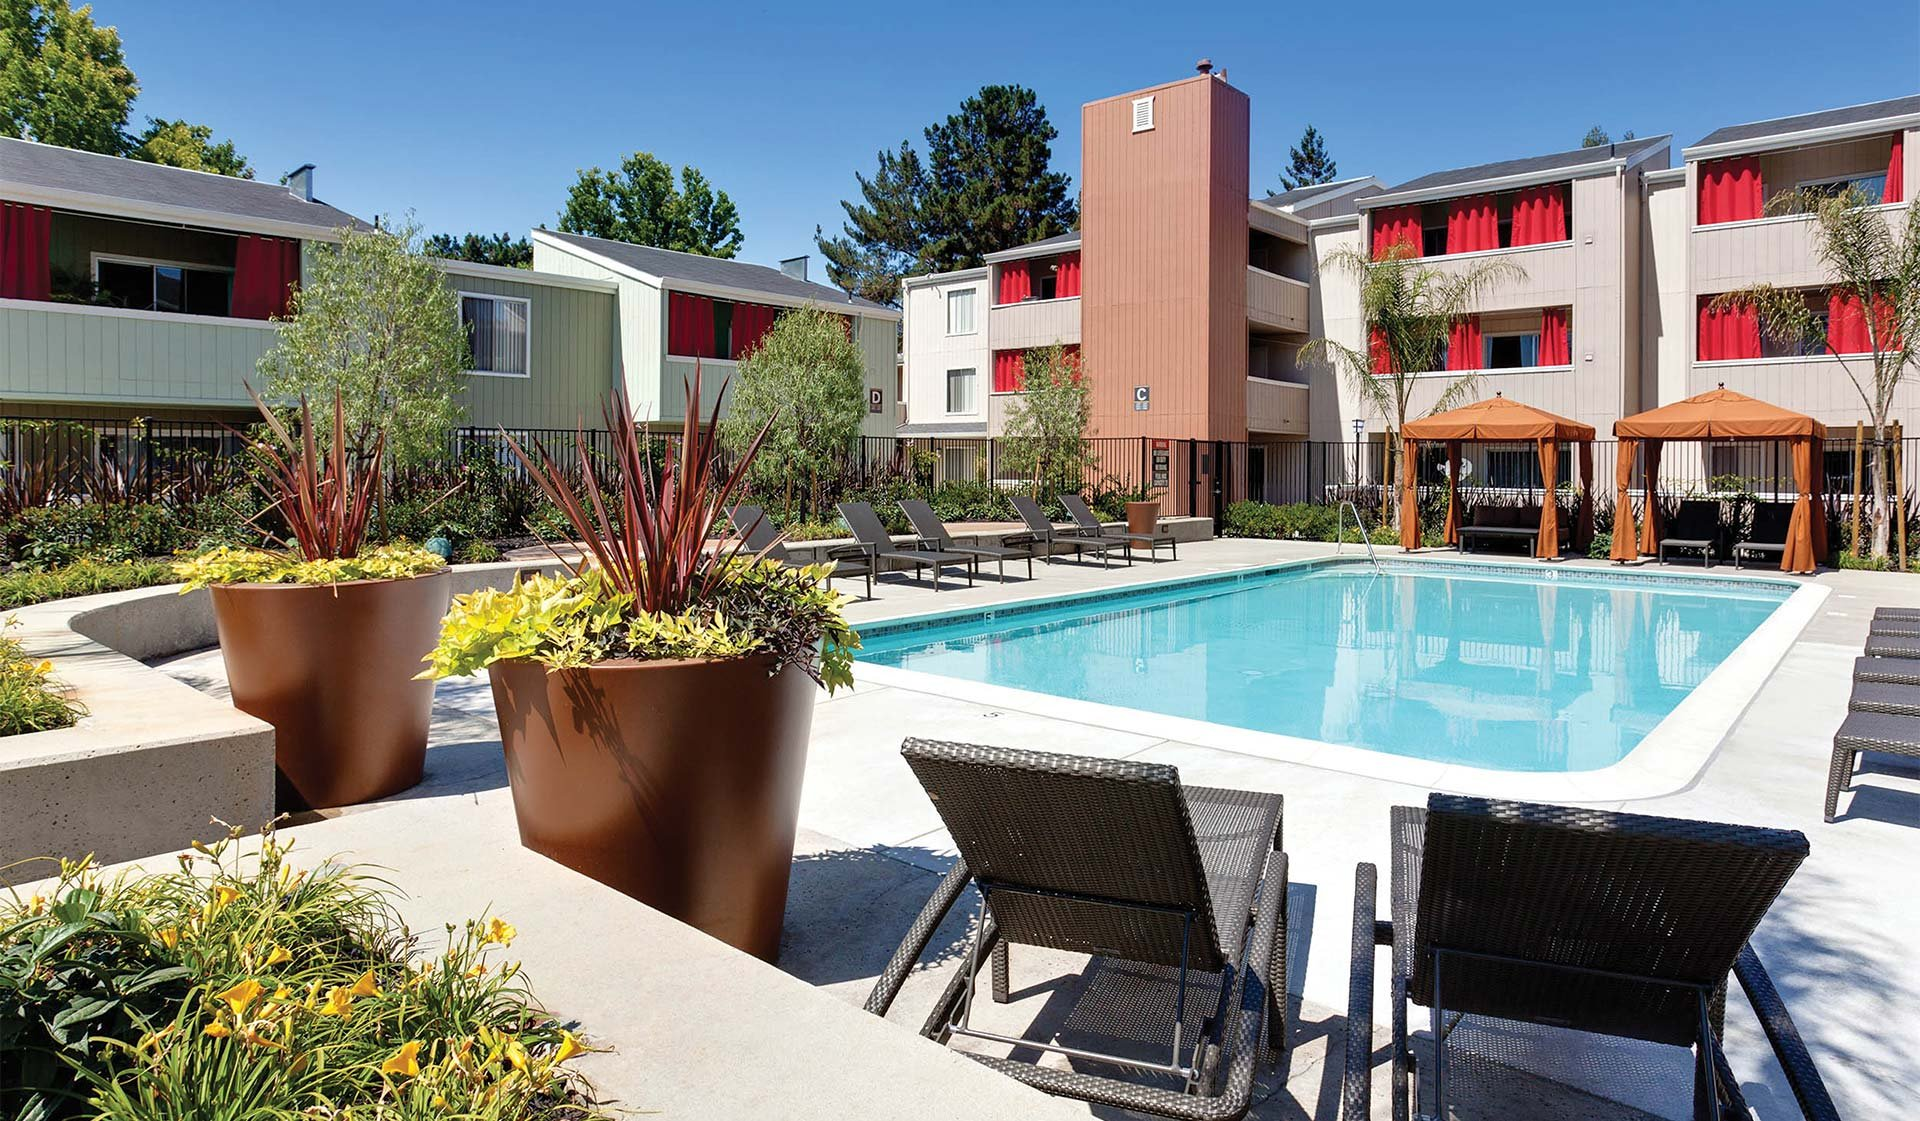 707 Leahy - Pool - Redwood City, CA